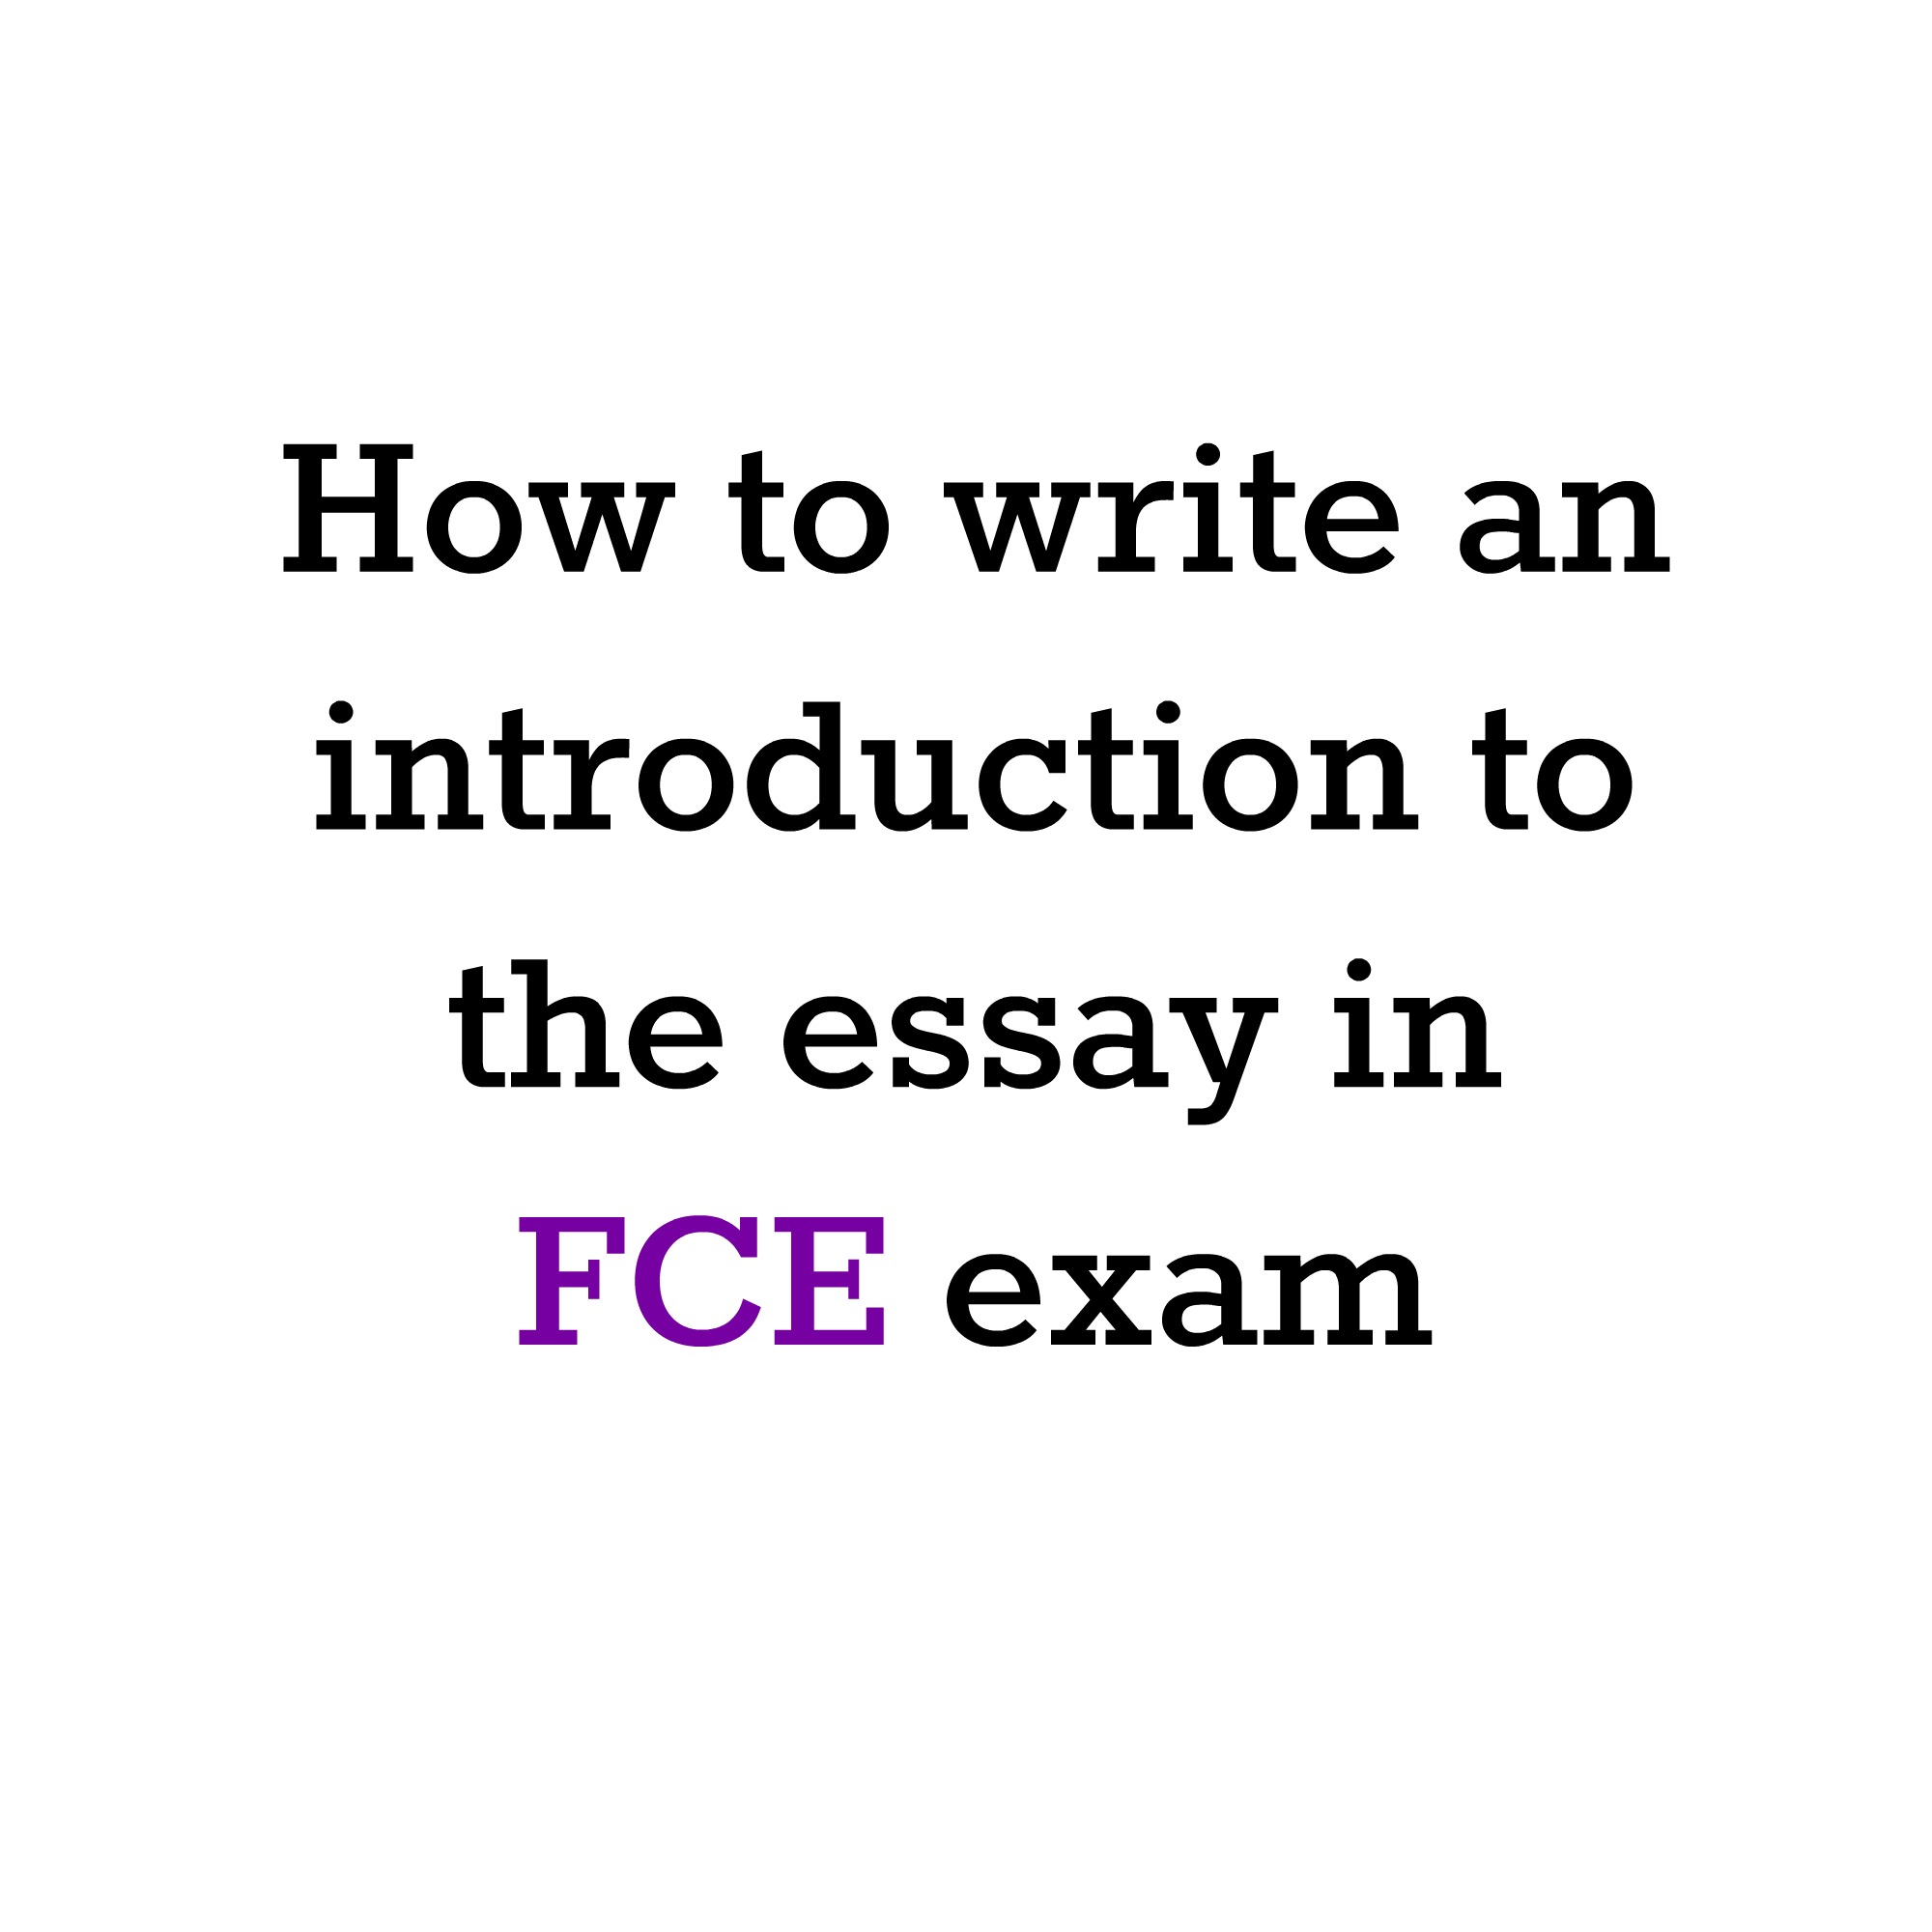 how to write an introduction to the essay in fce exam english how to write an introduction to the essay in fce exam english exam help